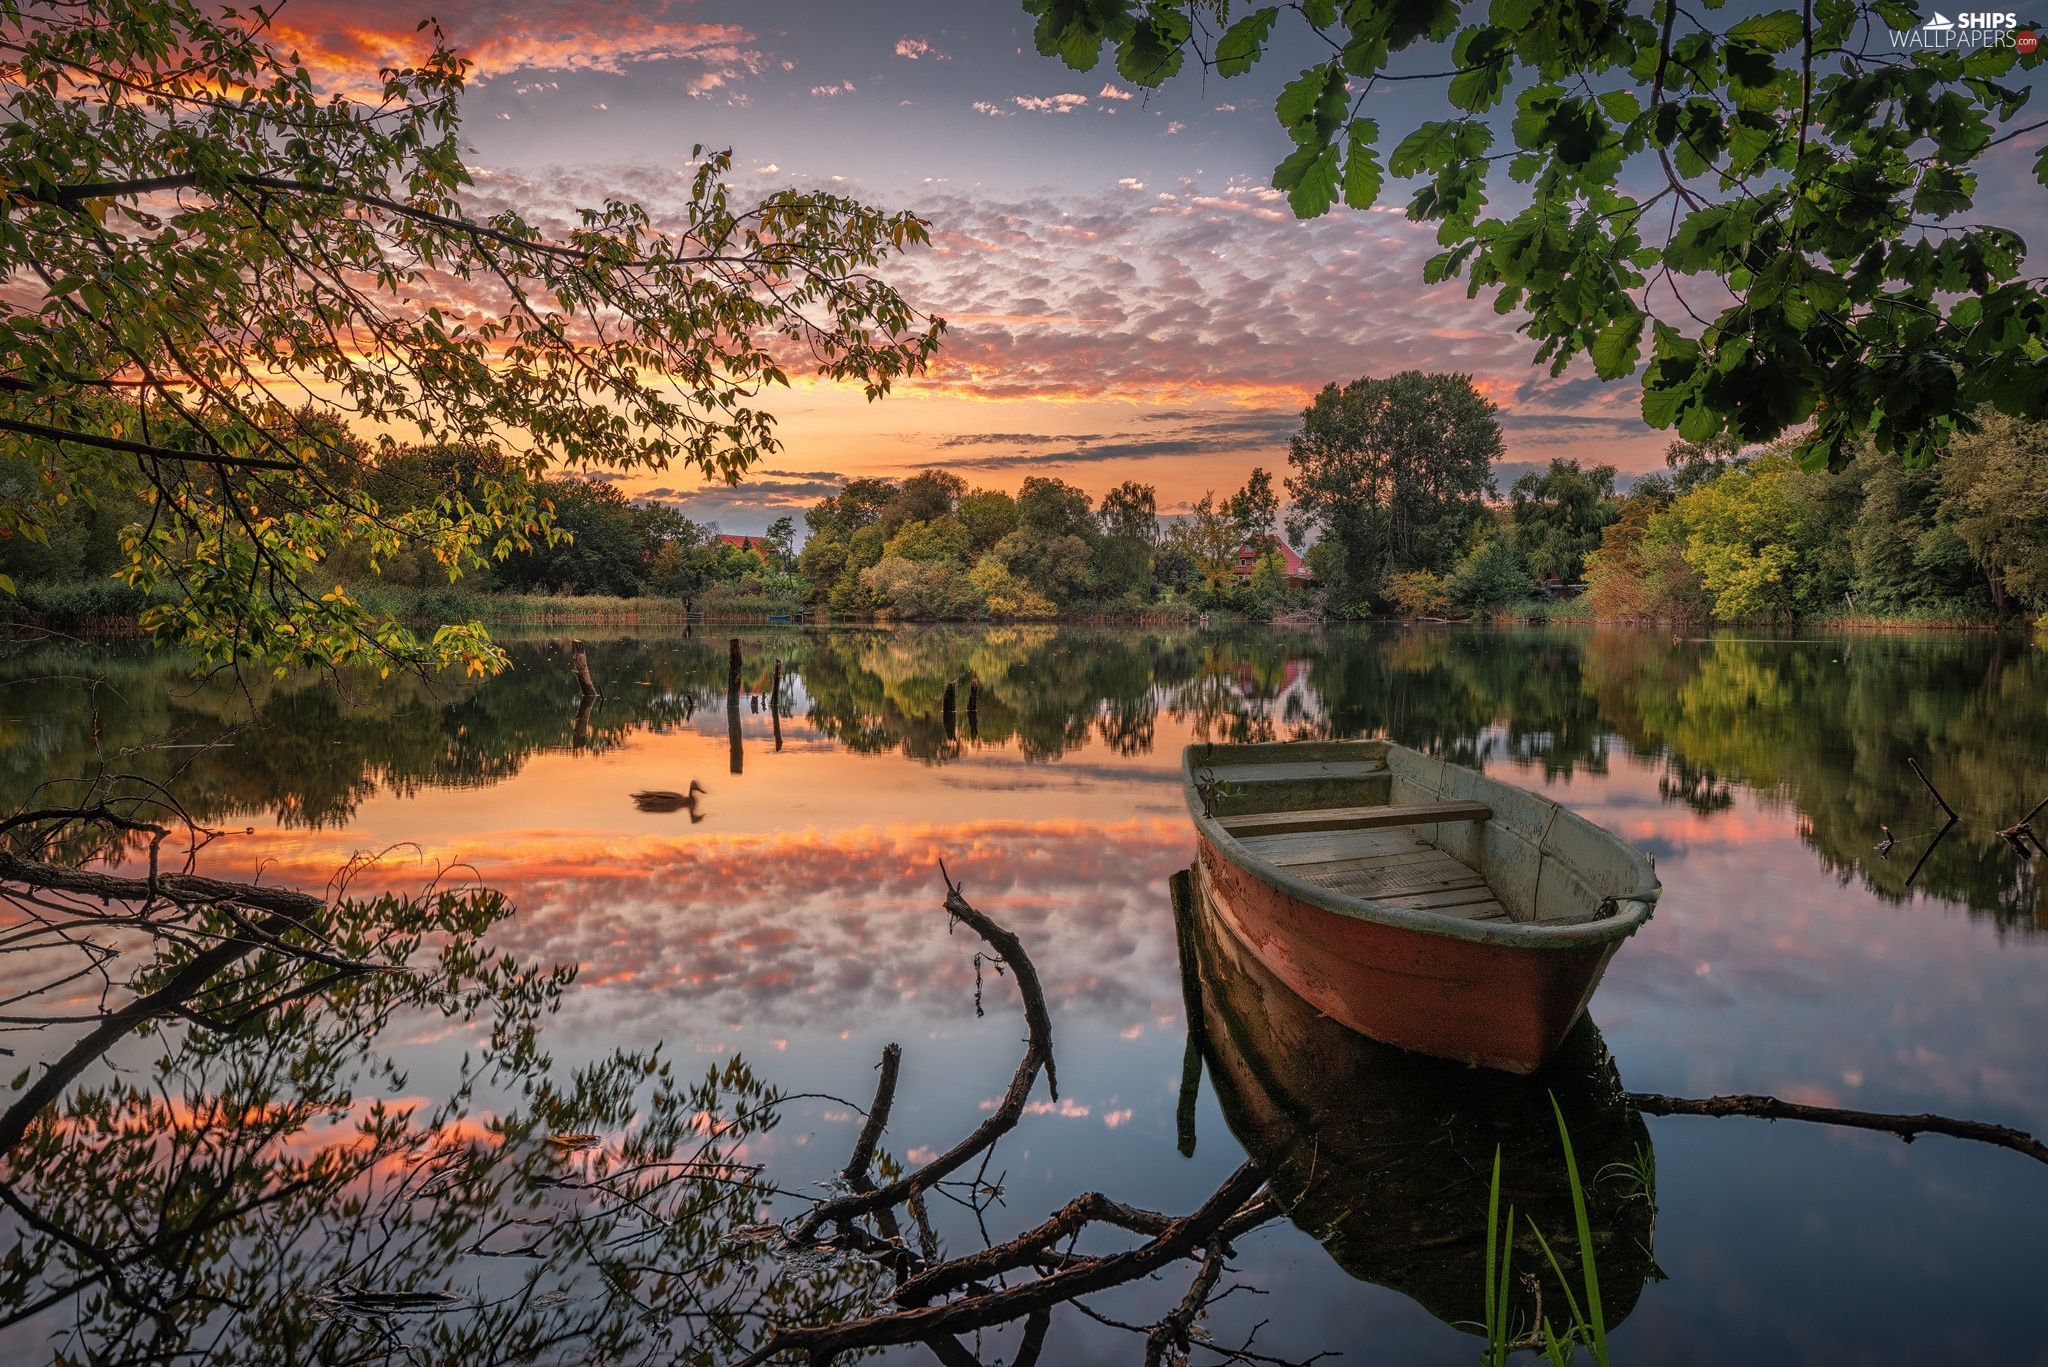 duck, trees, reflection, viewes, clouds, Boat, lake, Great Sunsets